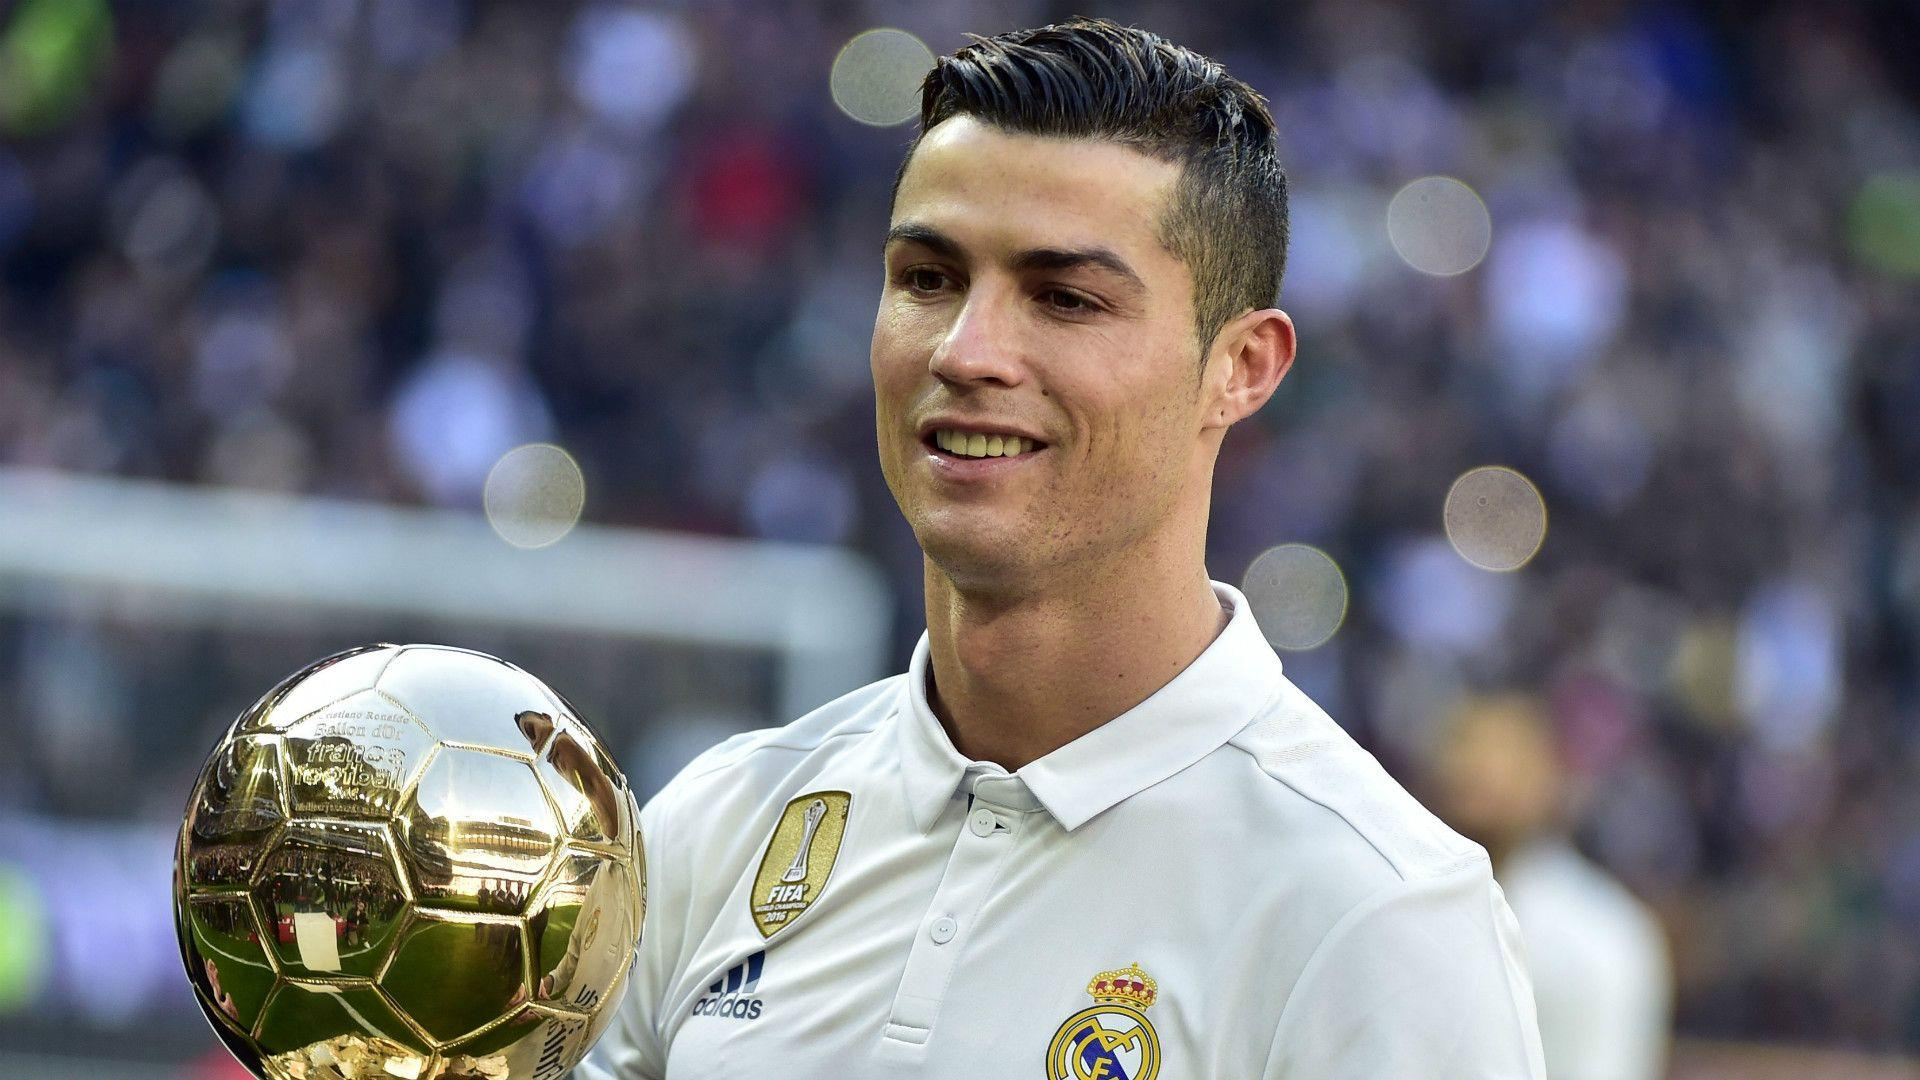 C ronaldo pictures 2018 2018 Cristiano Ronaldo HD Wallpapers Download CR7 Images